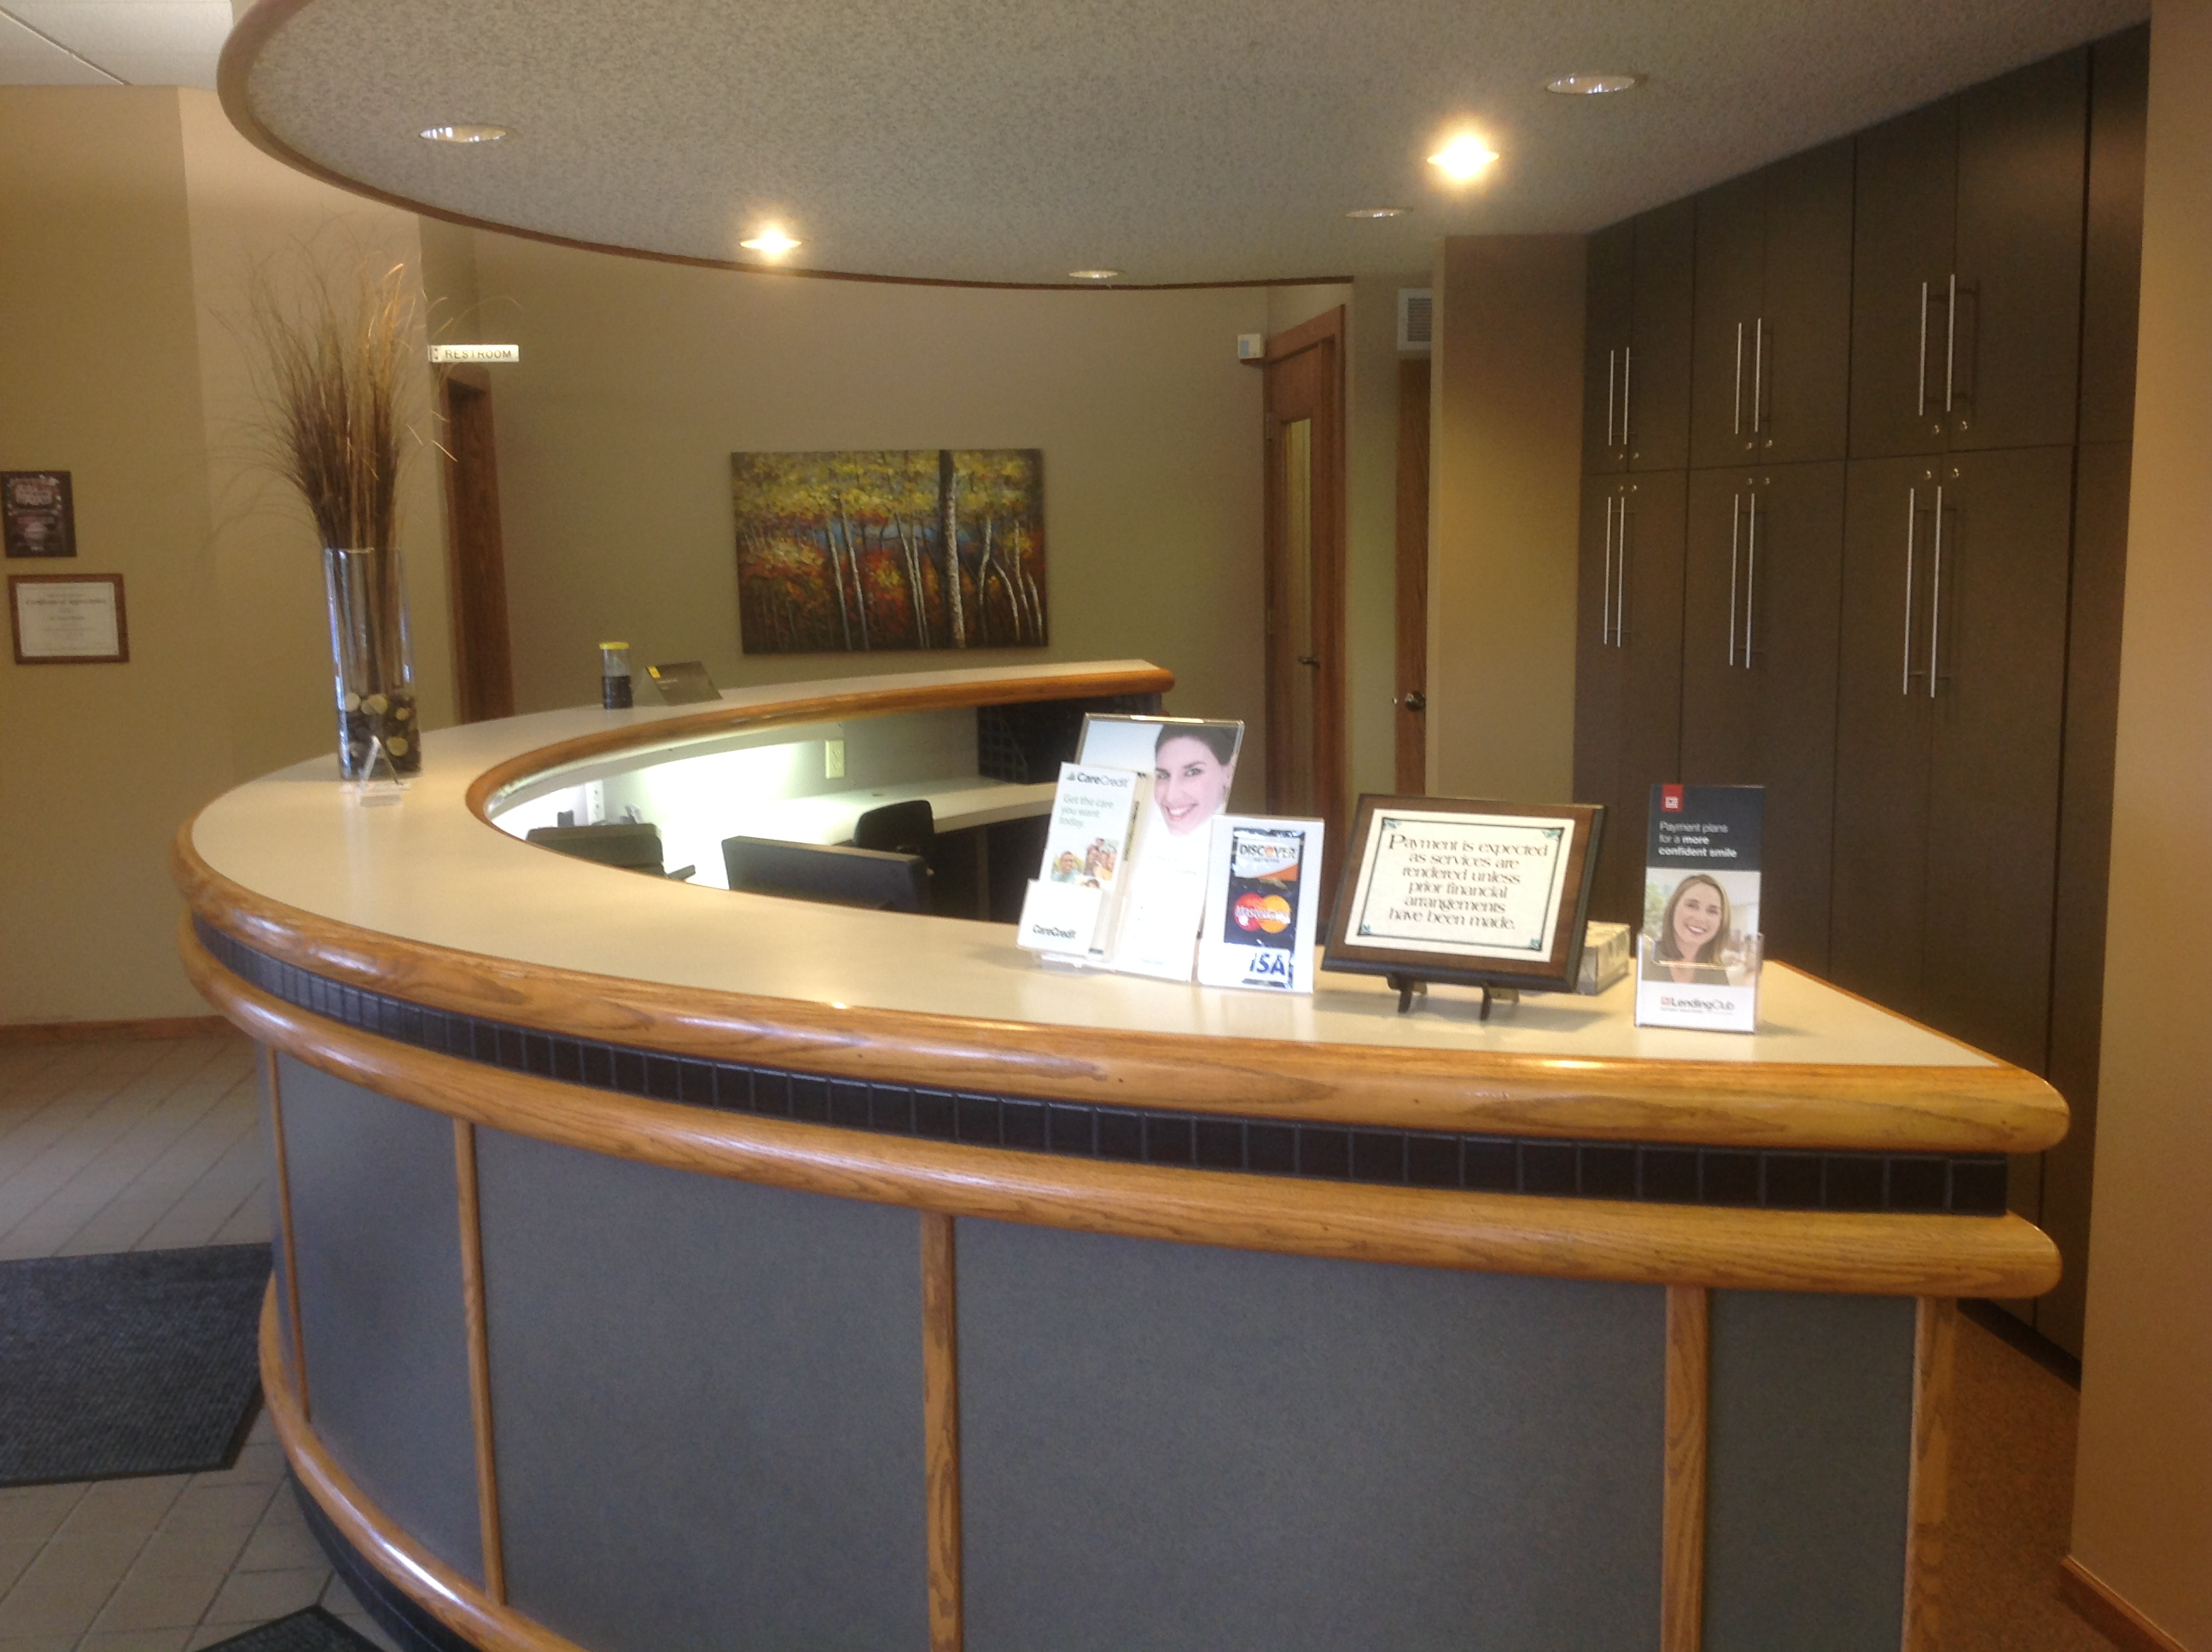 Complete Family Dentistry - R. Daron Sheline DDS image 10